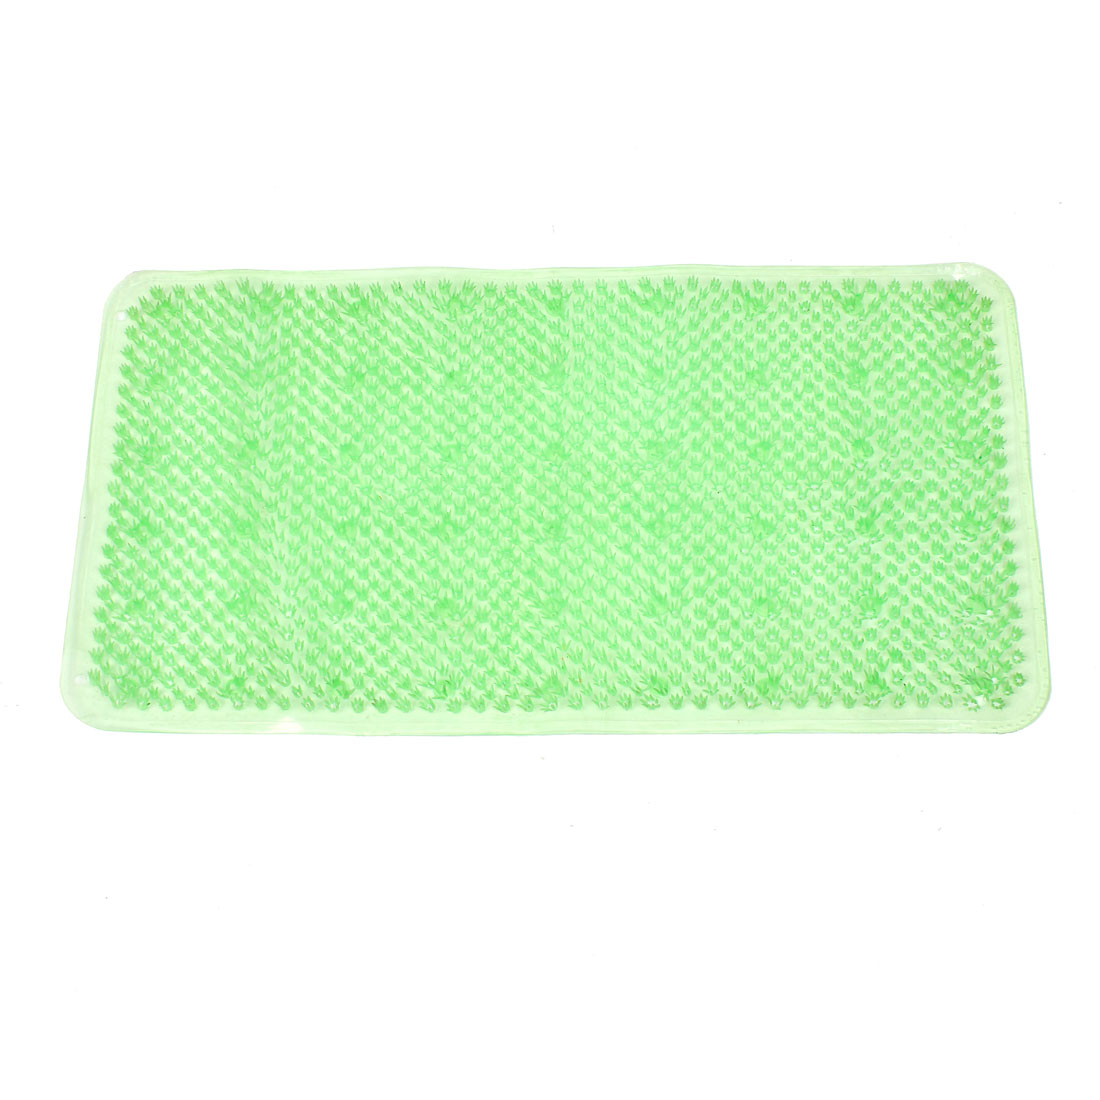 Bathroom Nonslip Lawn Design Silicone Water Absorbtion Mat Floor Pad Green